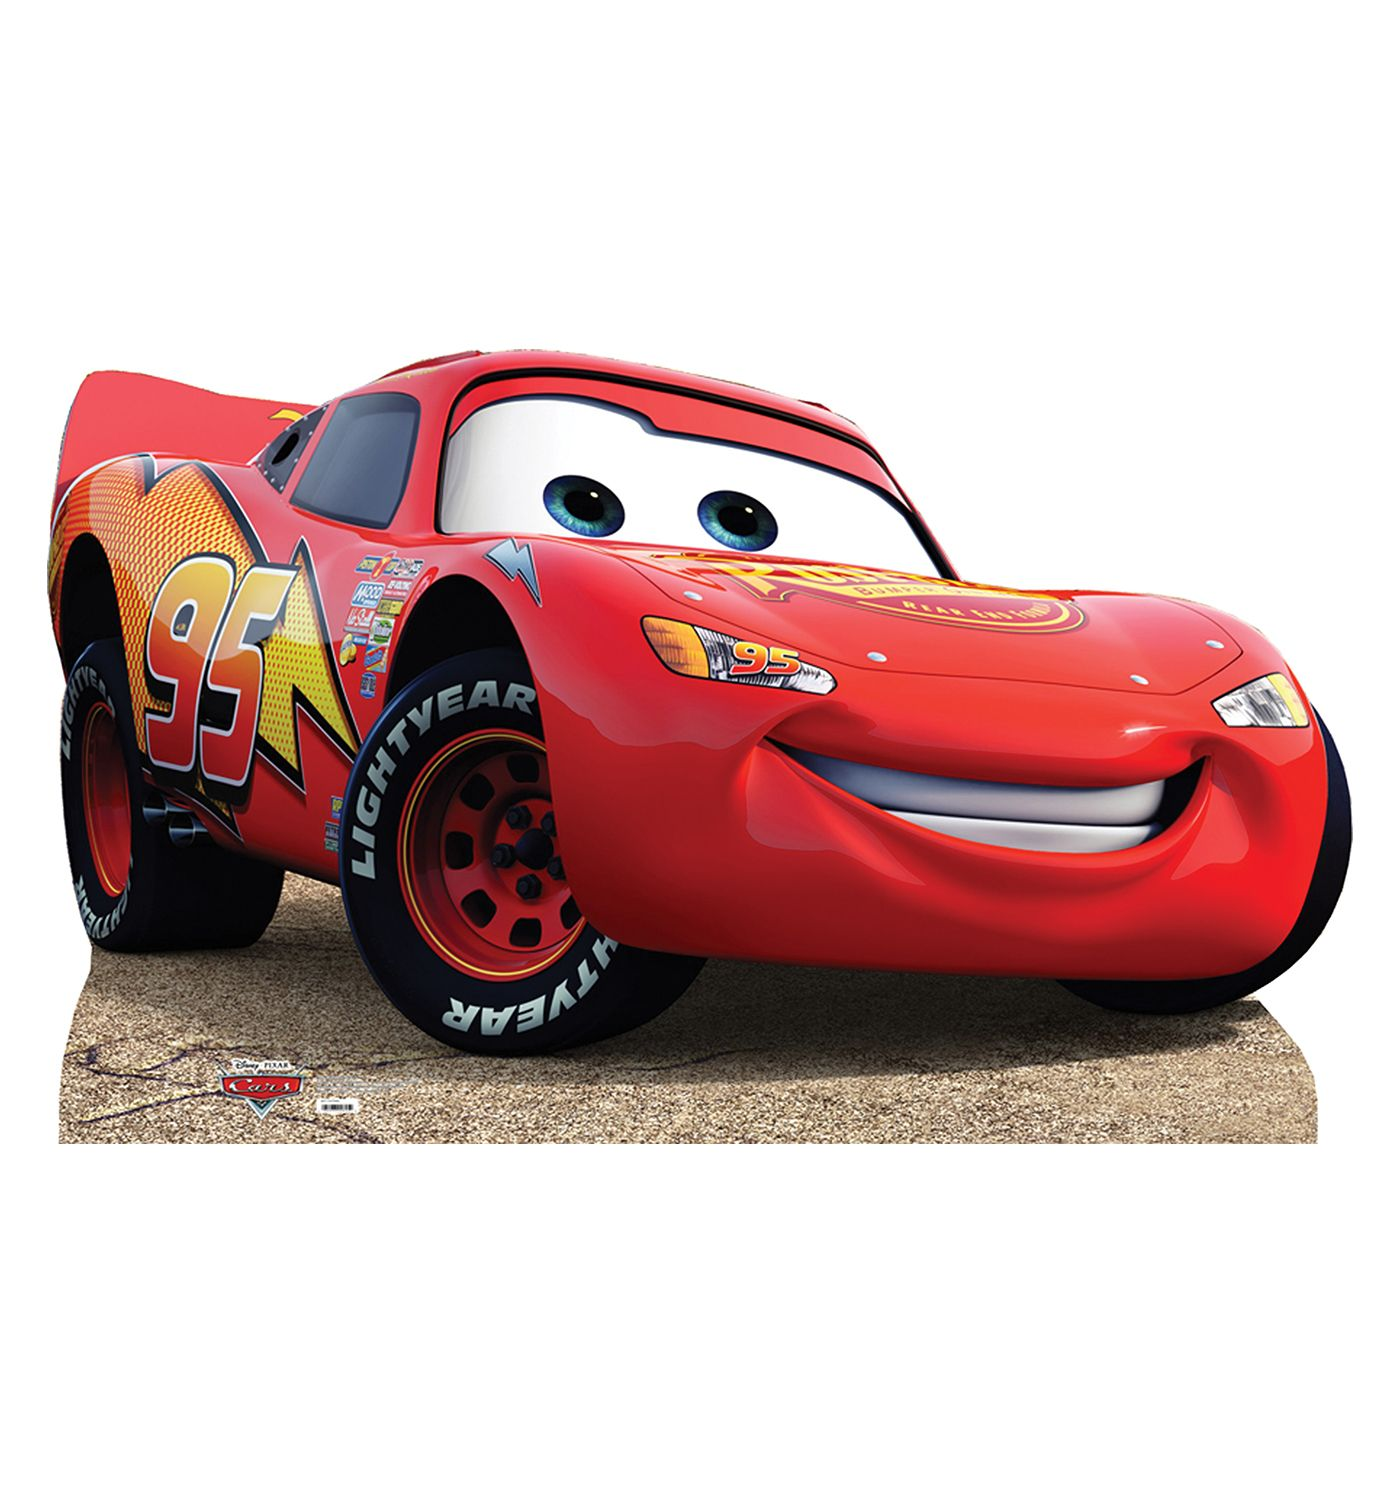 Coloring cars 2 games - Coloring Games Lightning Mcqueen Lightning Mcqueen Cars